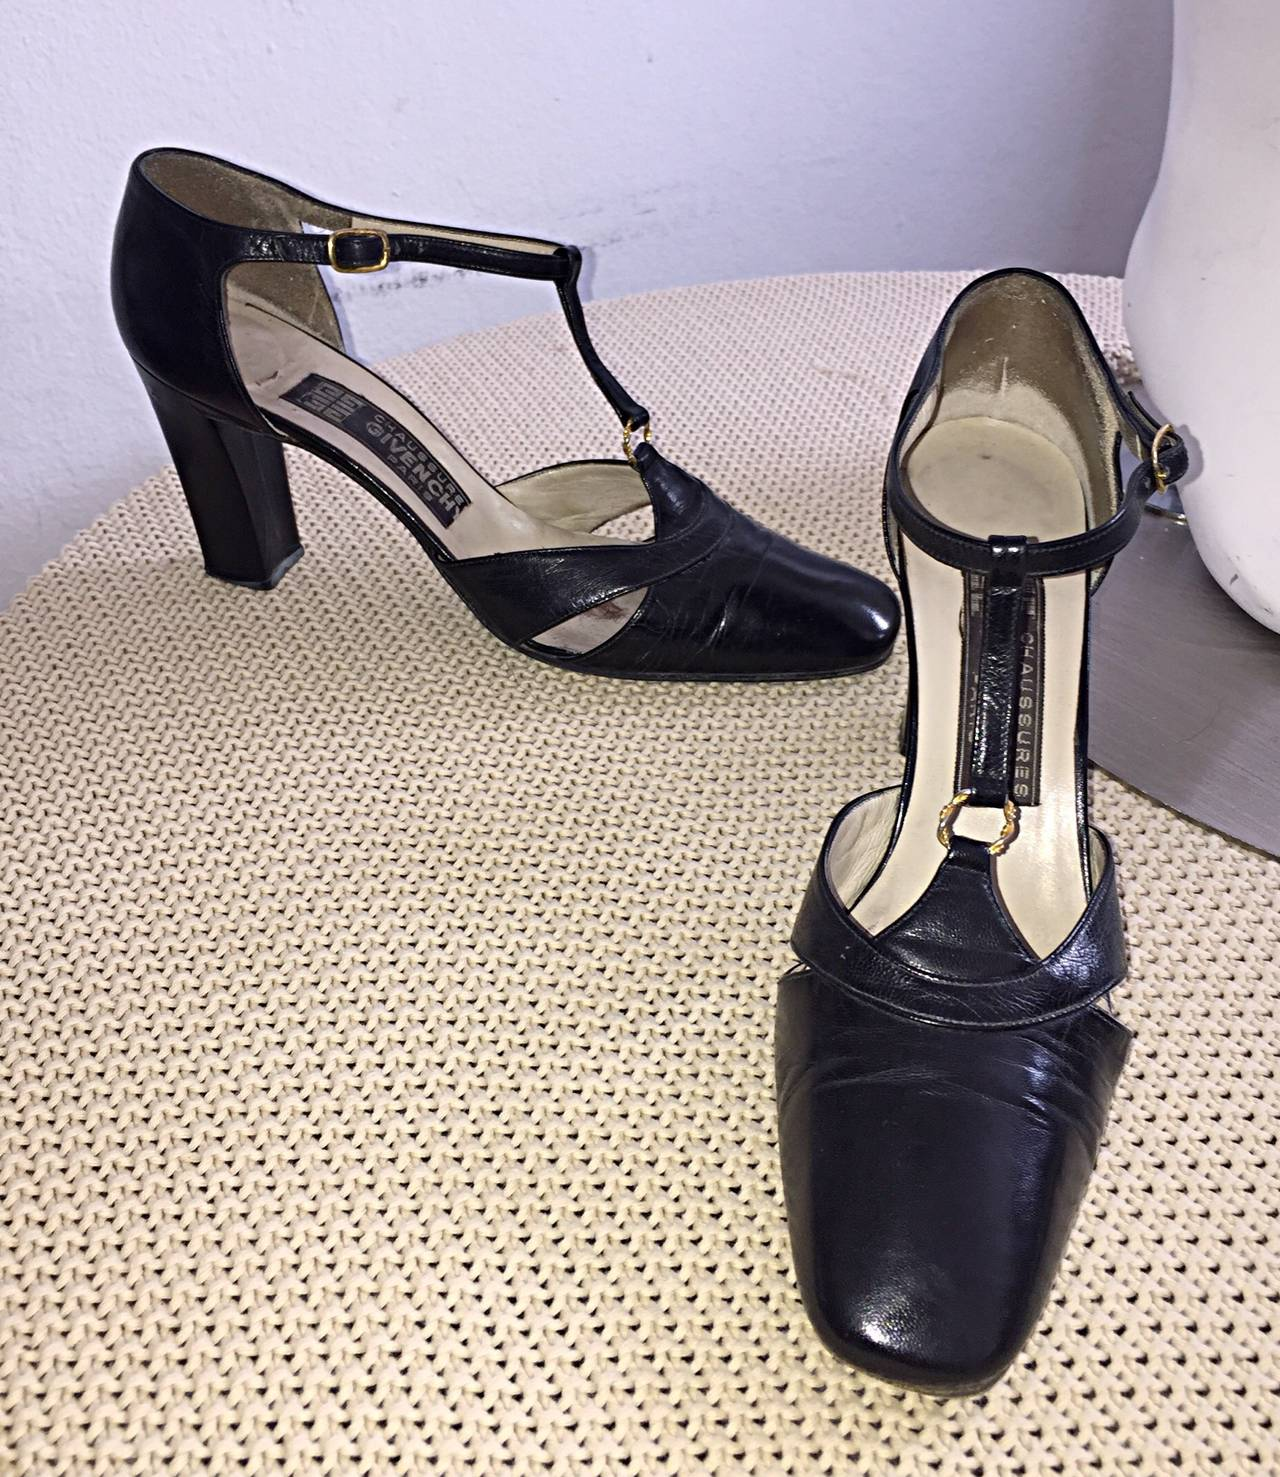 1960s Vintage Givenchy Black Leather Peekaboo T - Strap Heels Shoes Size 8 2